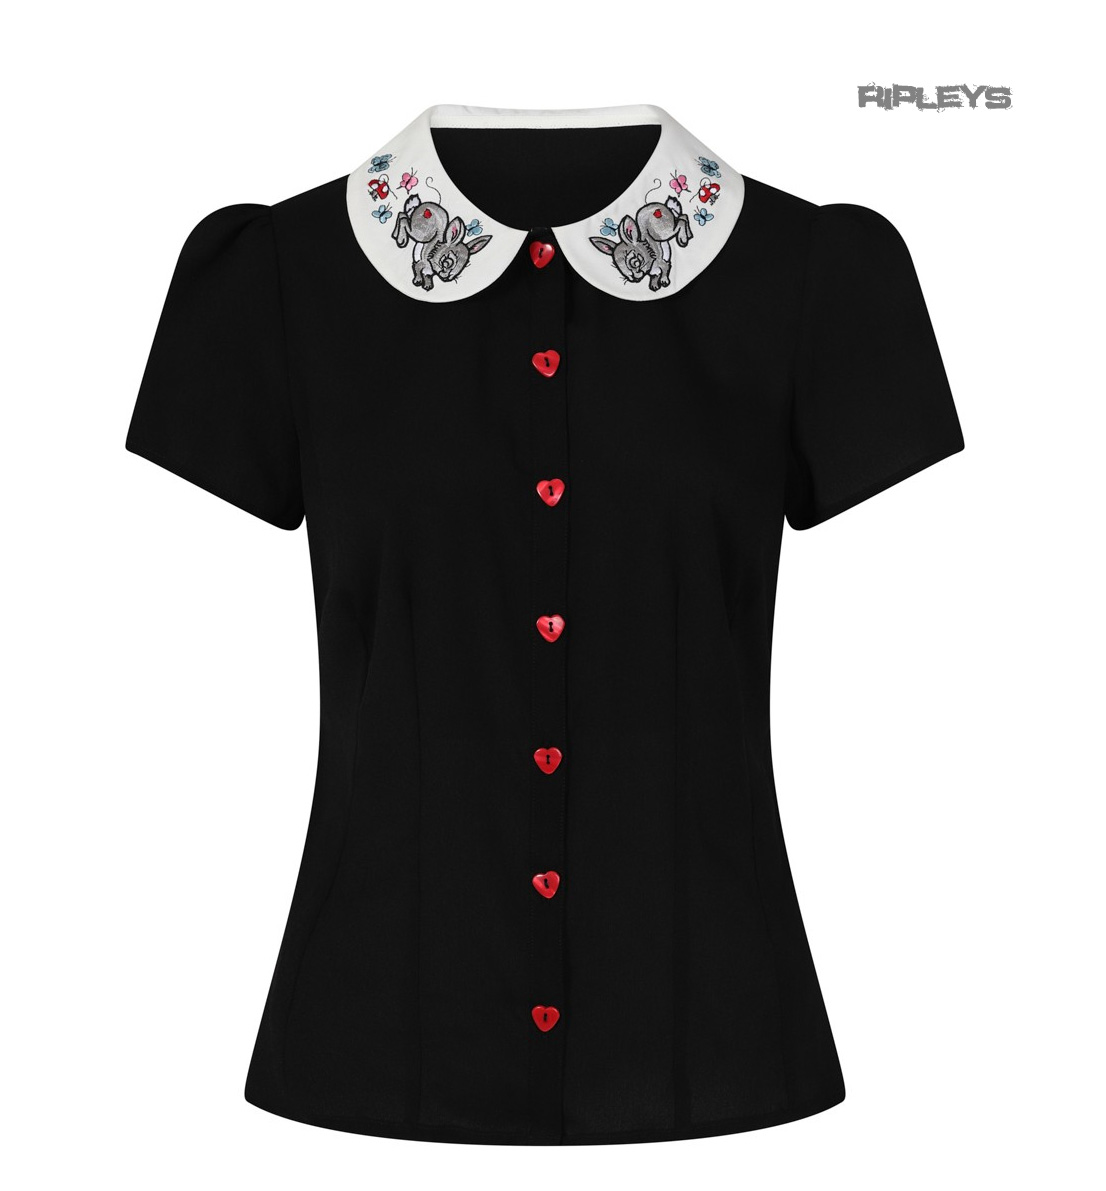 Hell-Bunny-Shirt-Top-Black-Blouse-THUMPER-Easter-Rabbit-Flowers-All-Sizes thumbnail 16